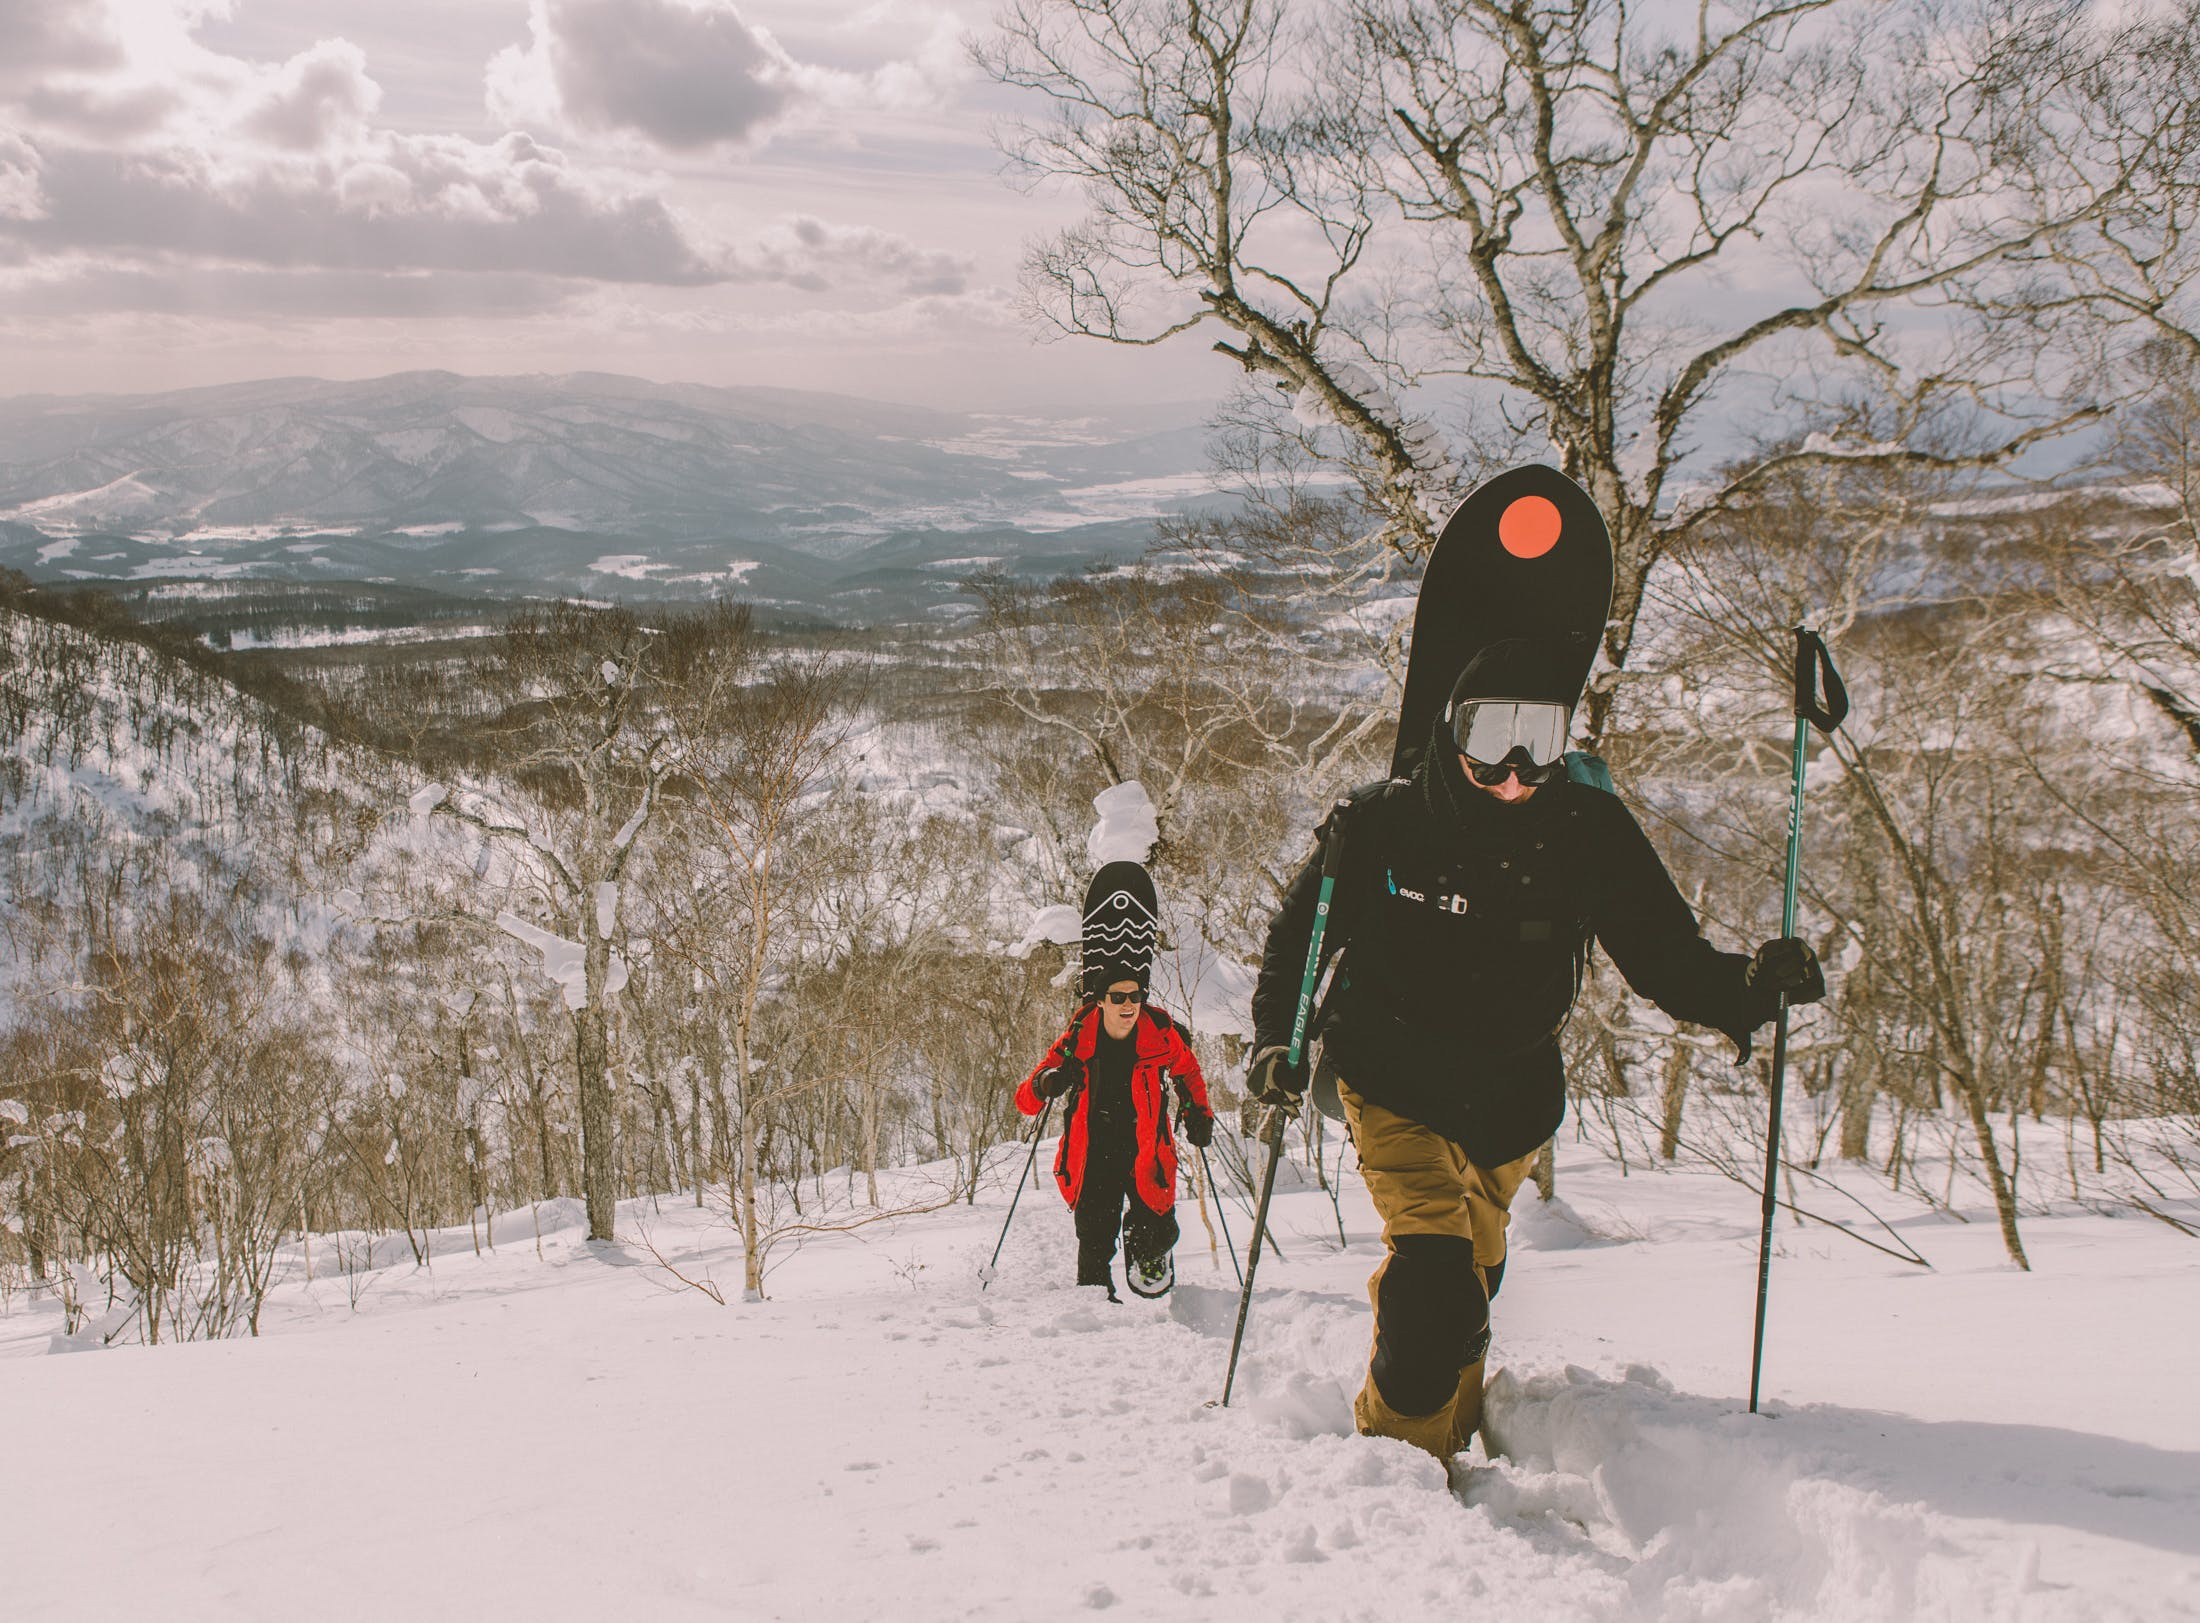 snowboarders backcountry hiking Japan